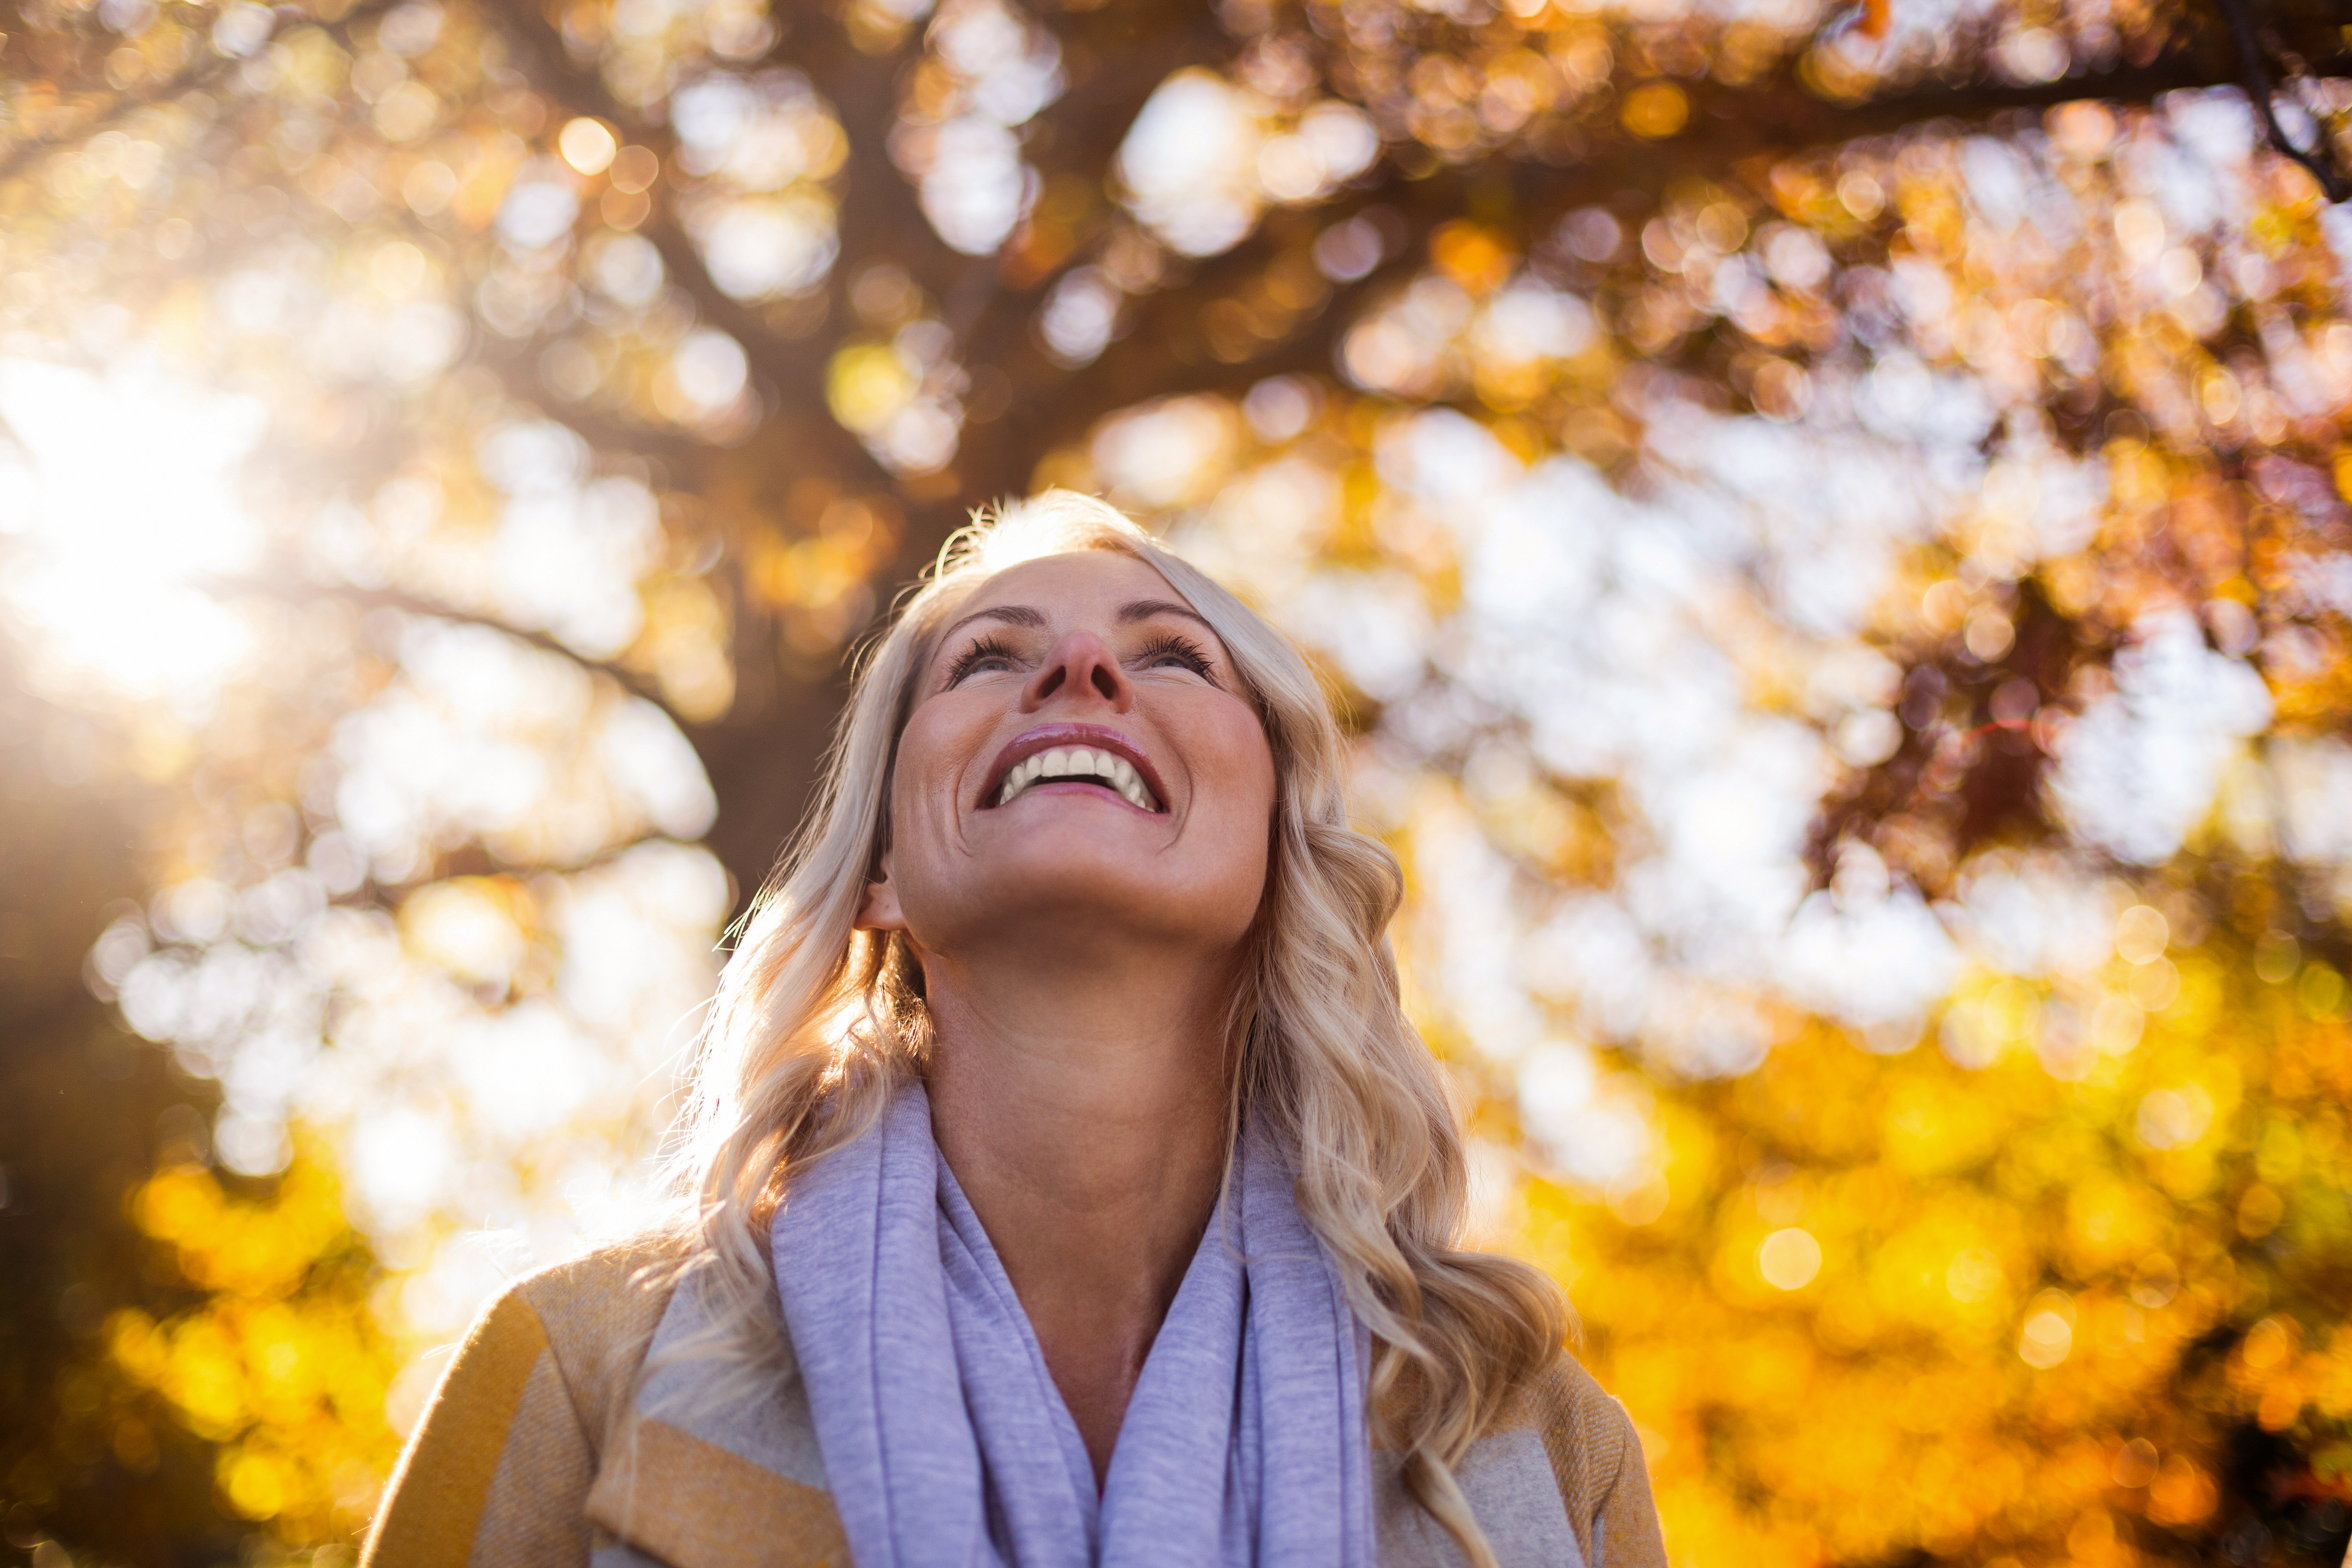 Facelift for Women over 50: 3 Reasons Surgery Beats Nonsurgical Treatments